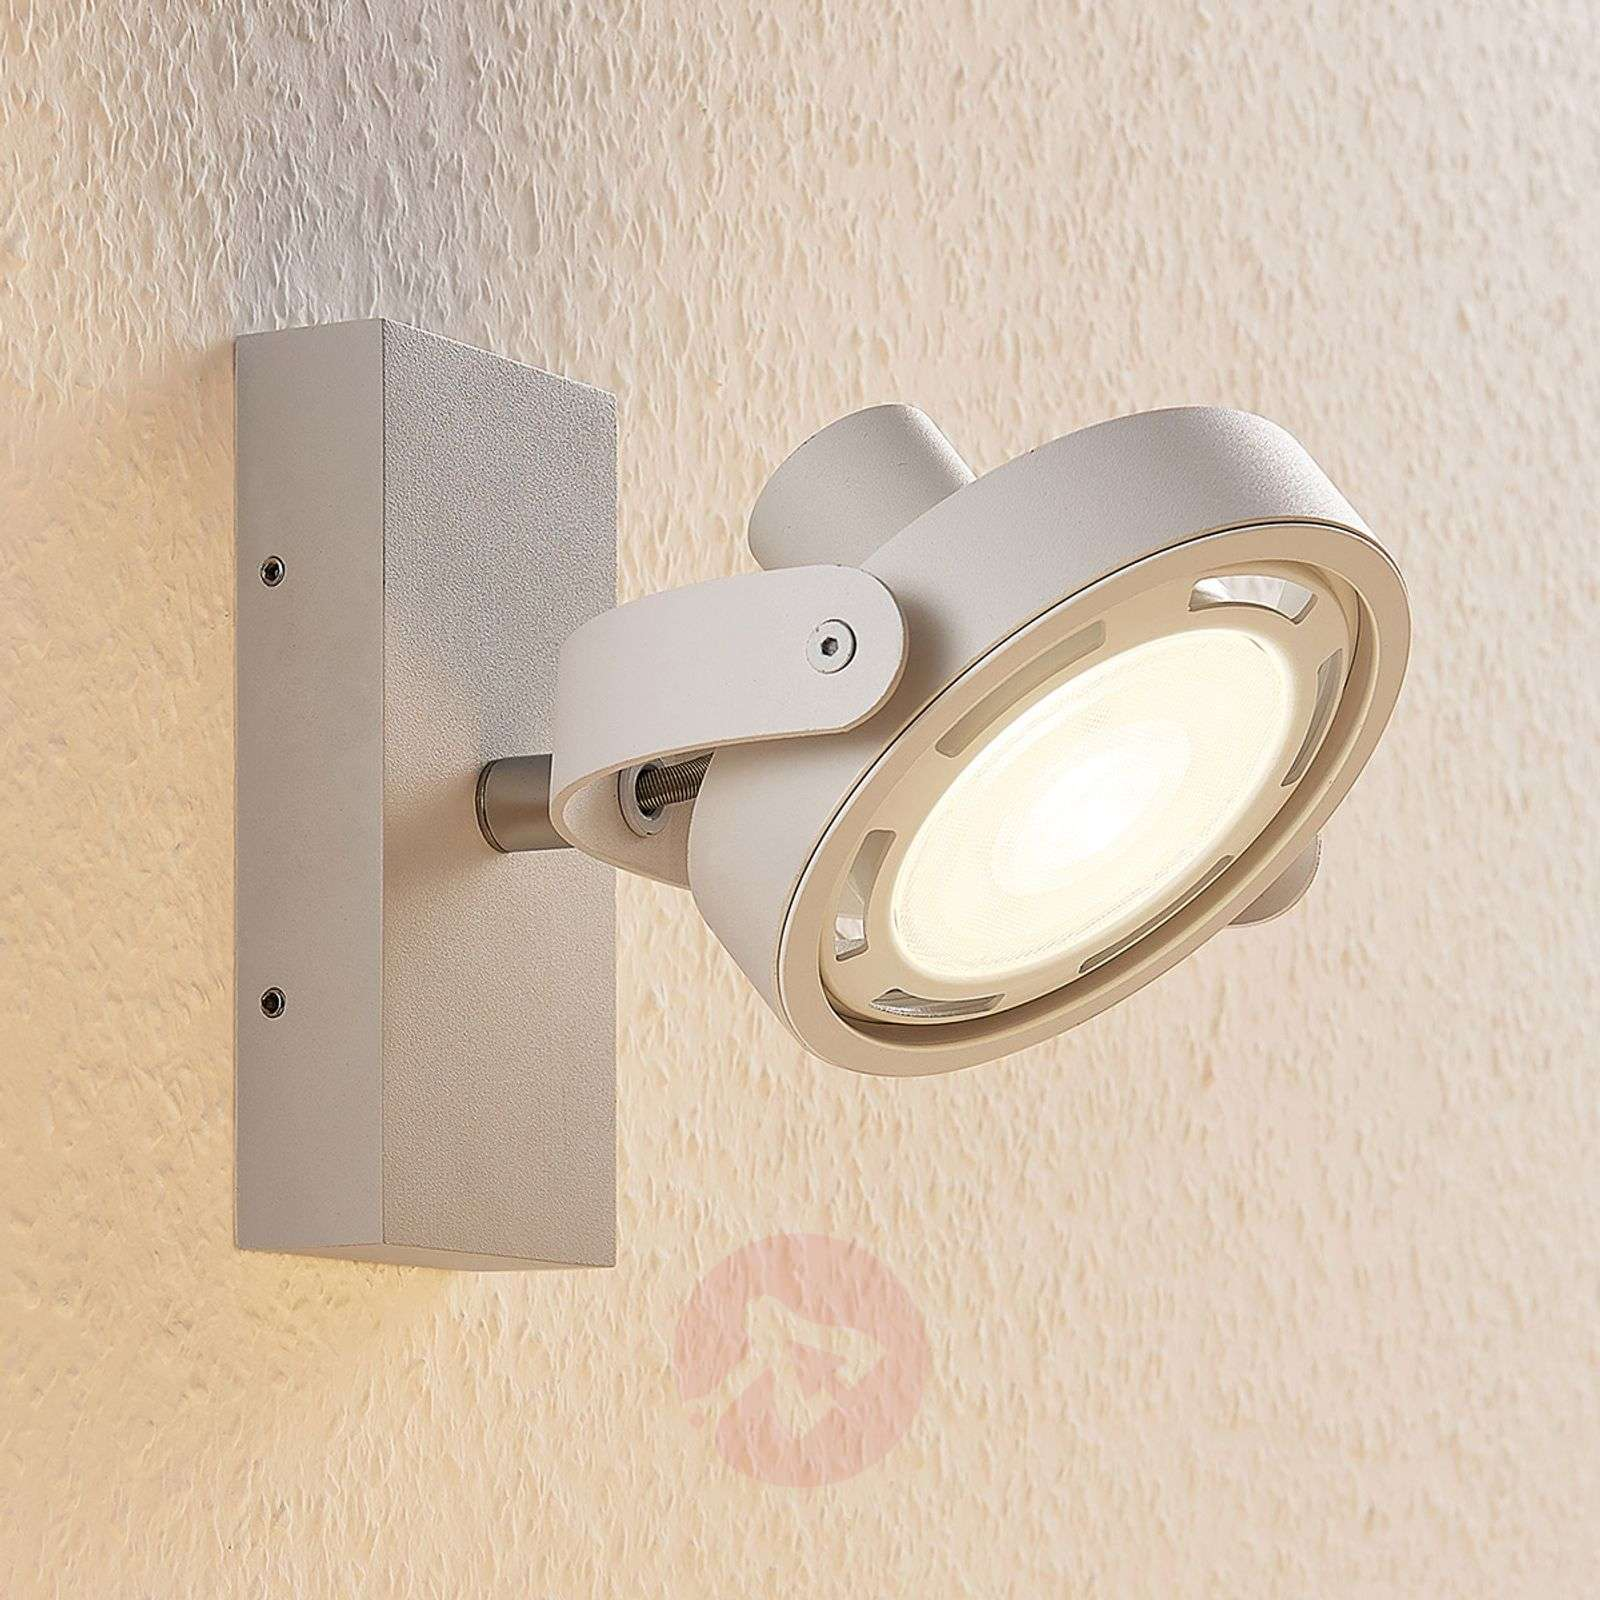 Spot LED Munin, dimmable, blanc, 1 lampe-9621877-02